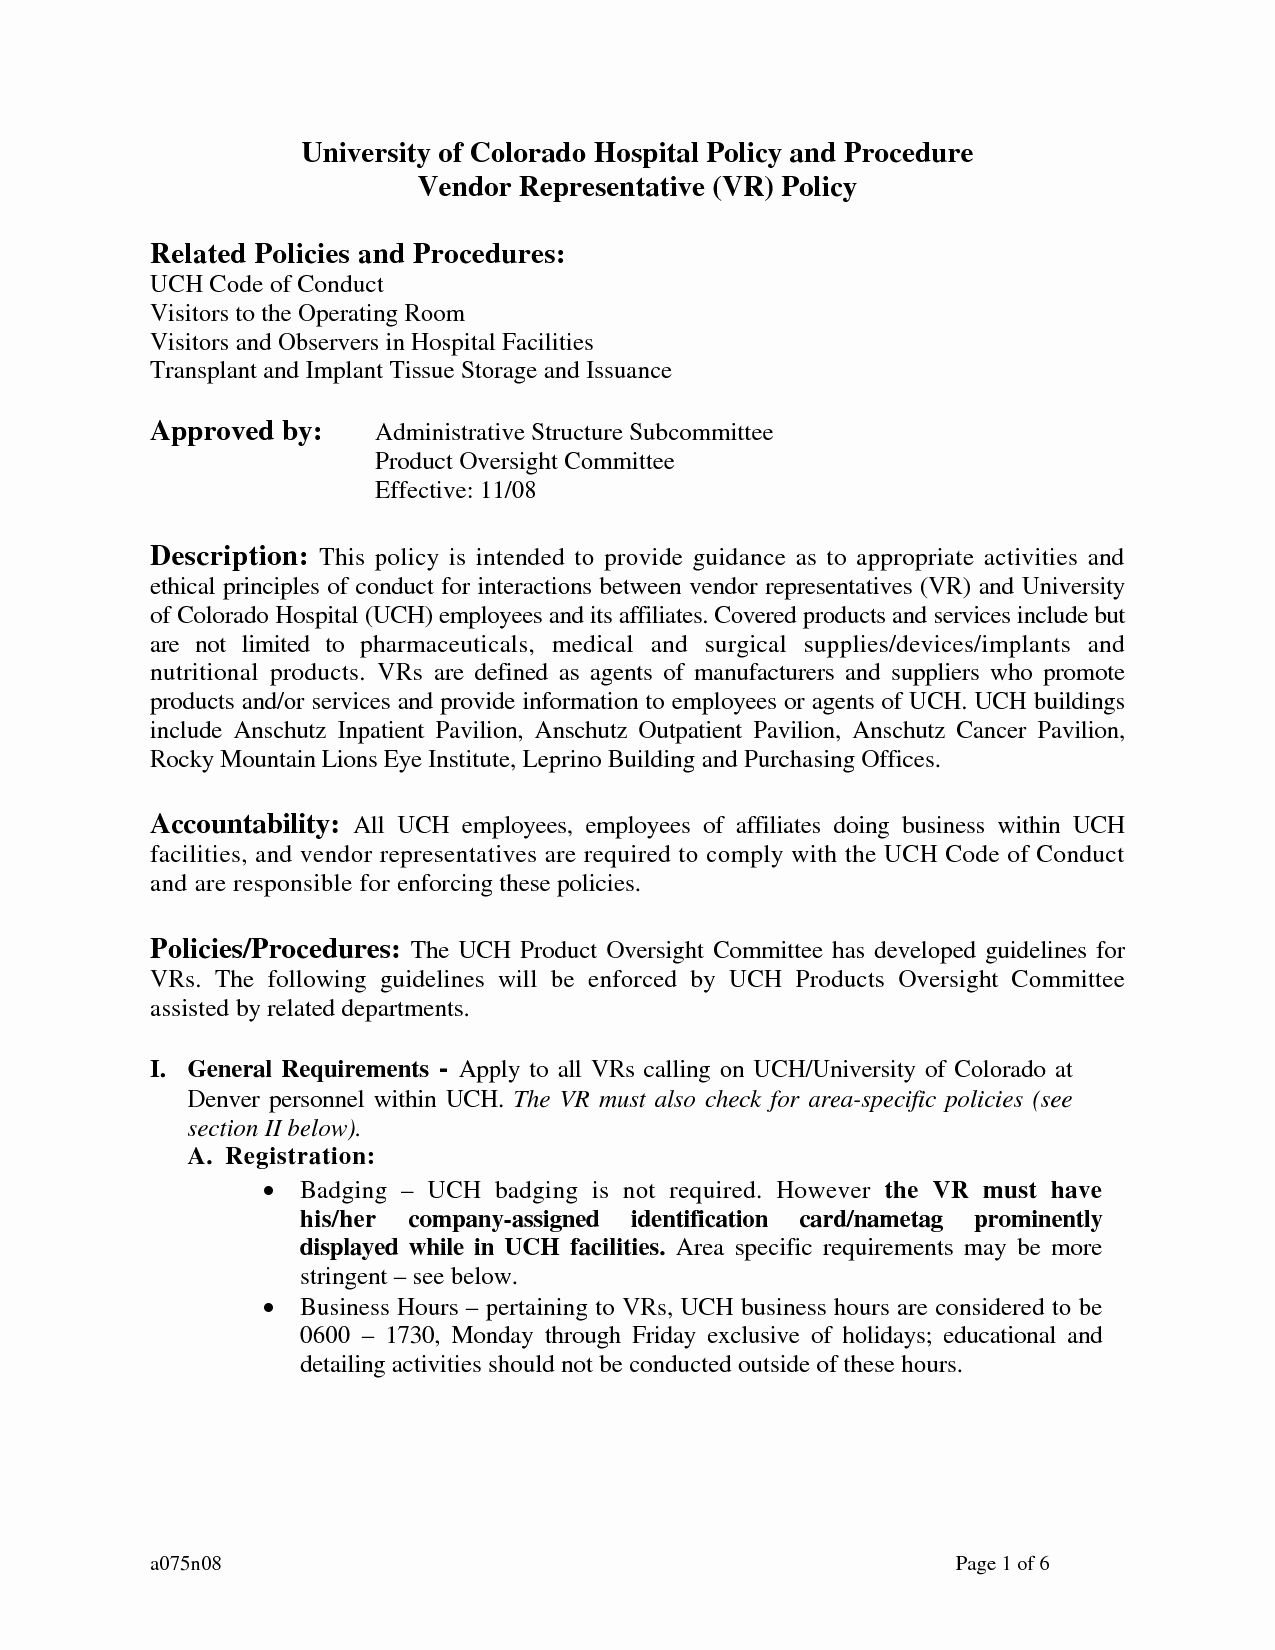 Policy and Procedure Template Unique Sample Policy and Procedure Documents